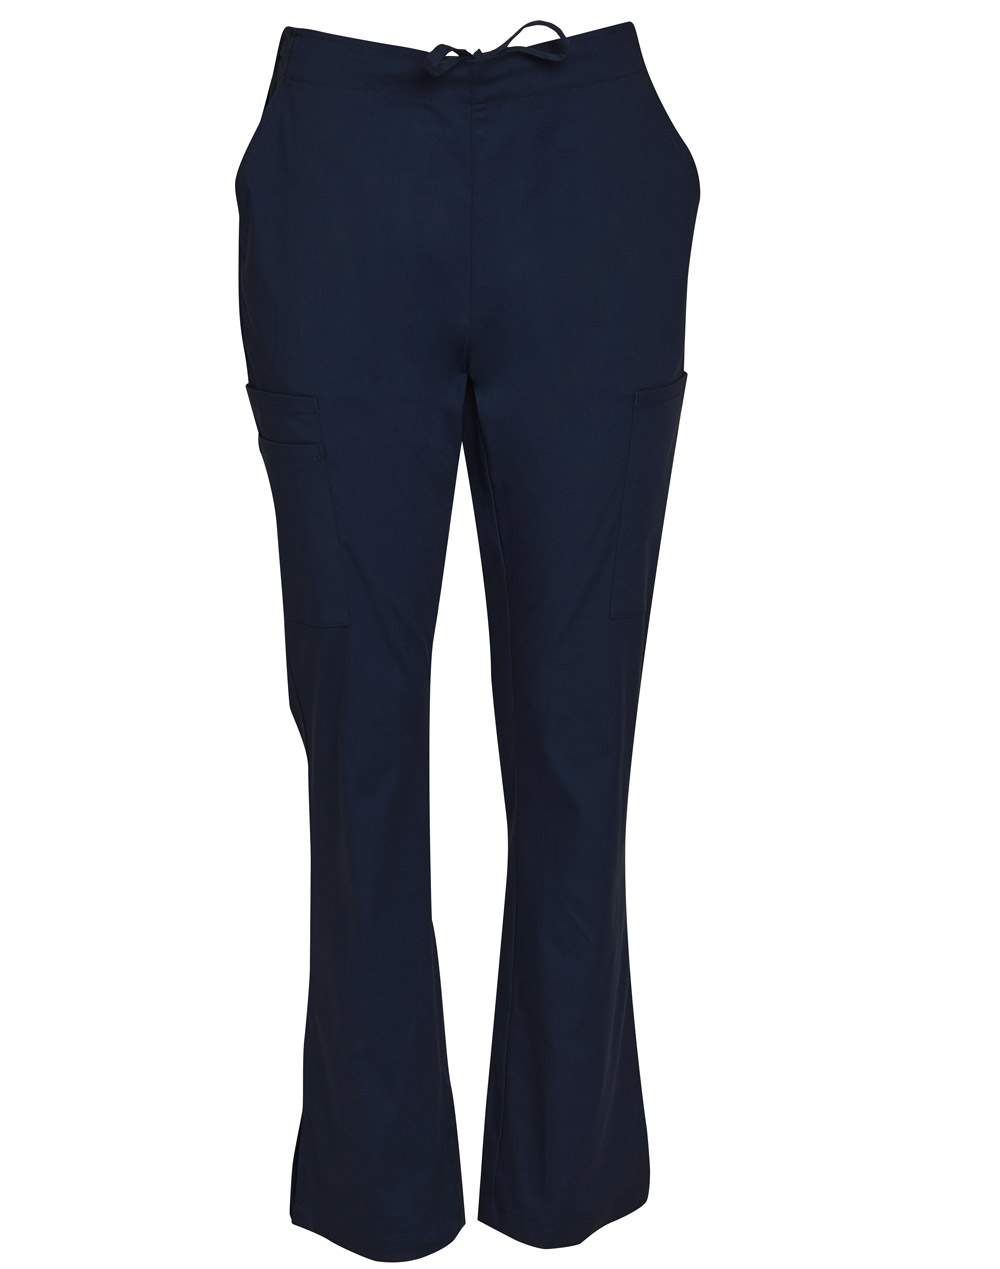 Buy Navy Ladies Semi-Elastic Waist Tie Solid Colour Scrub Pants Online in Perth